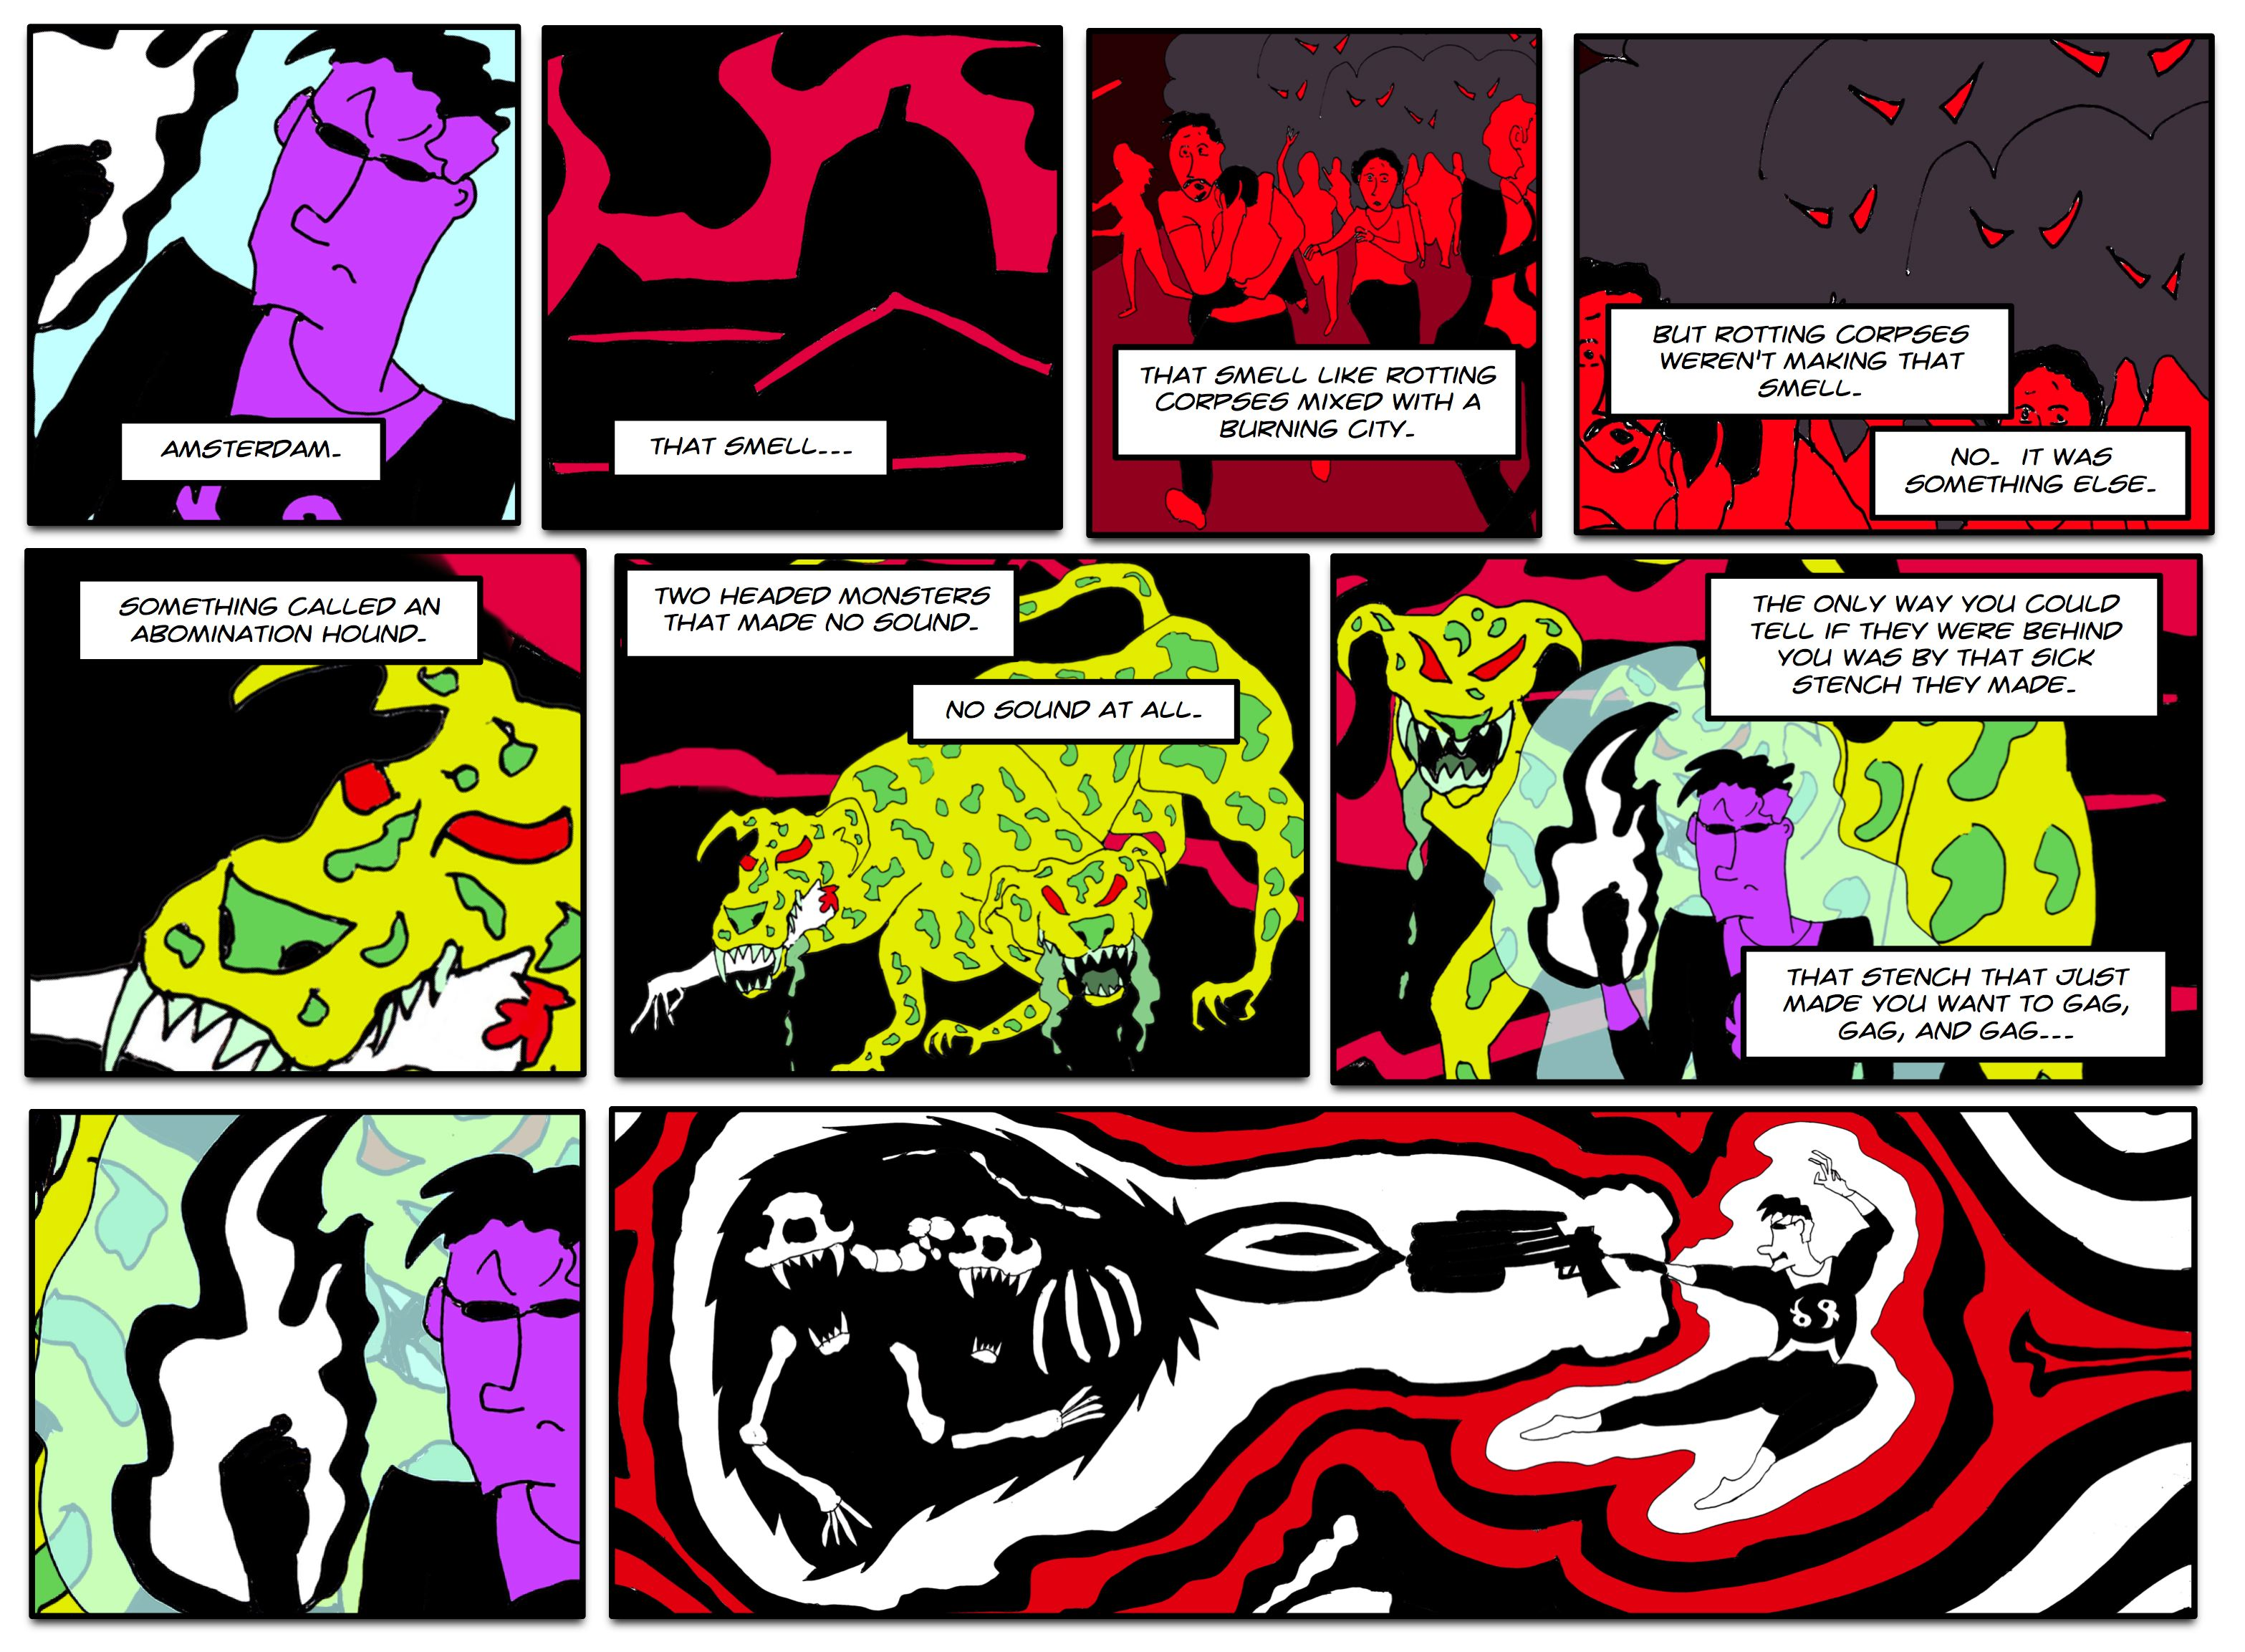 No real Abomination Hounds were hurt in this comic.